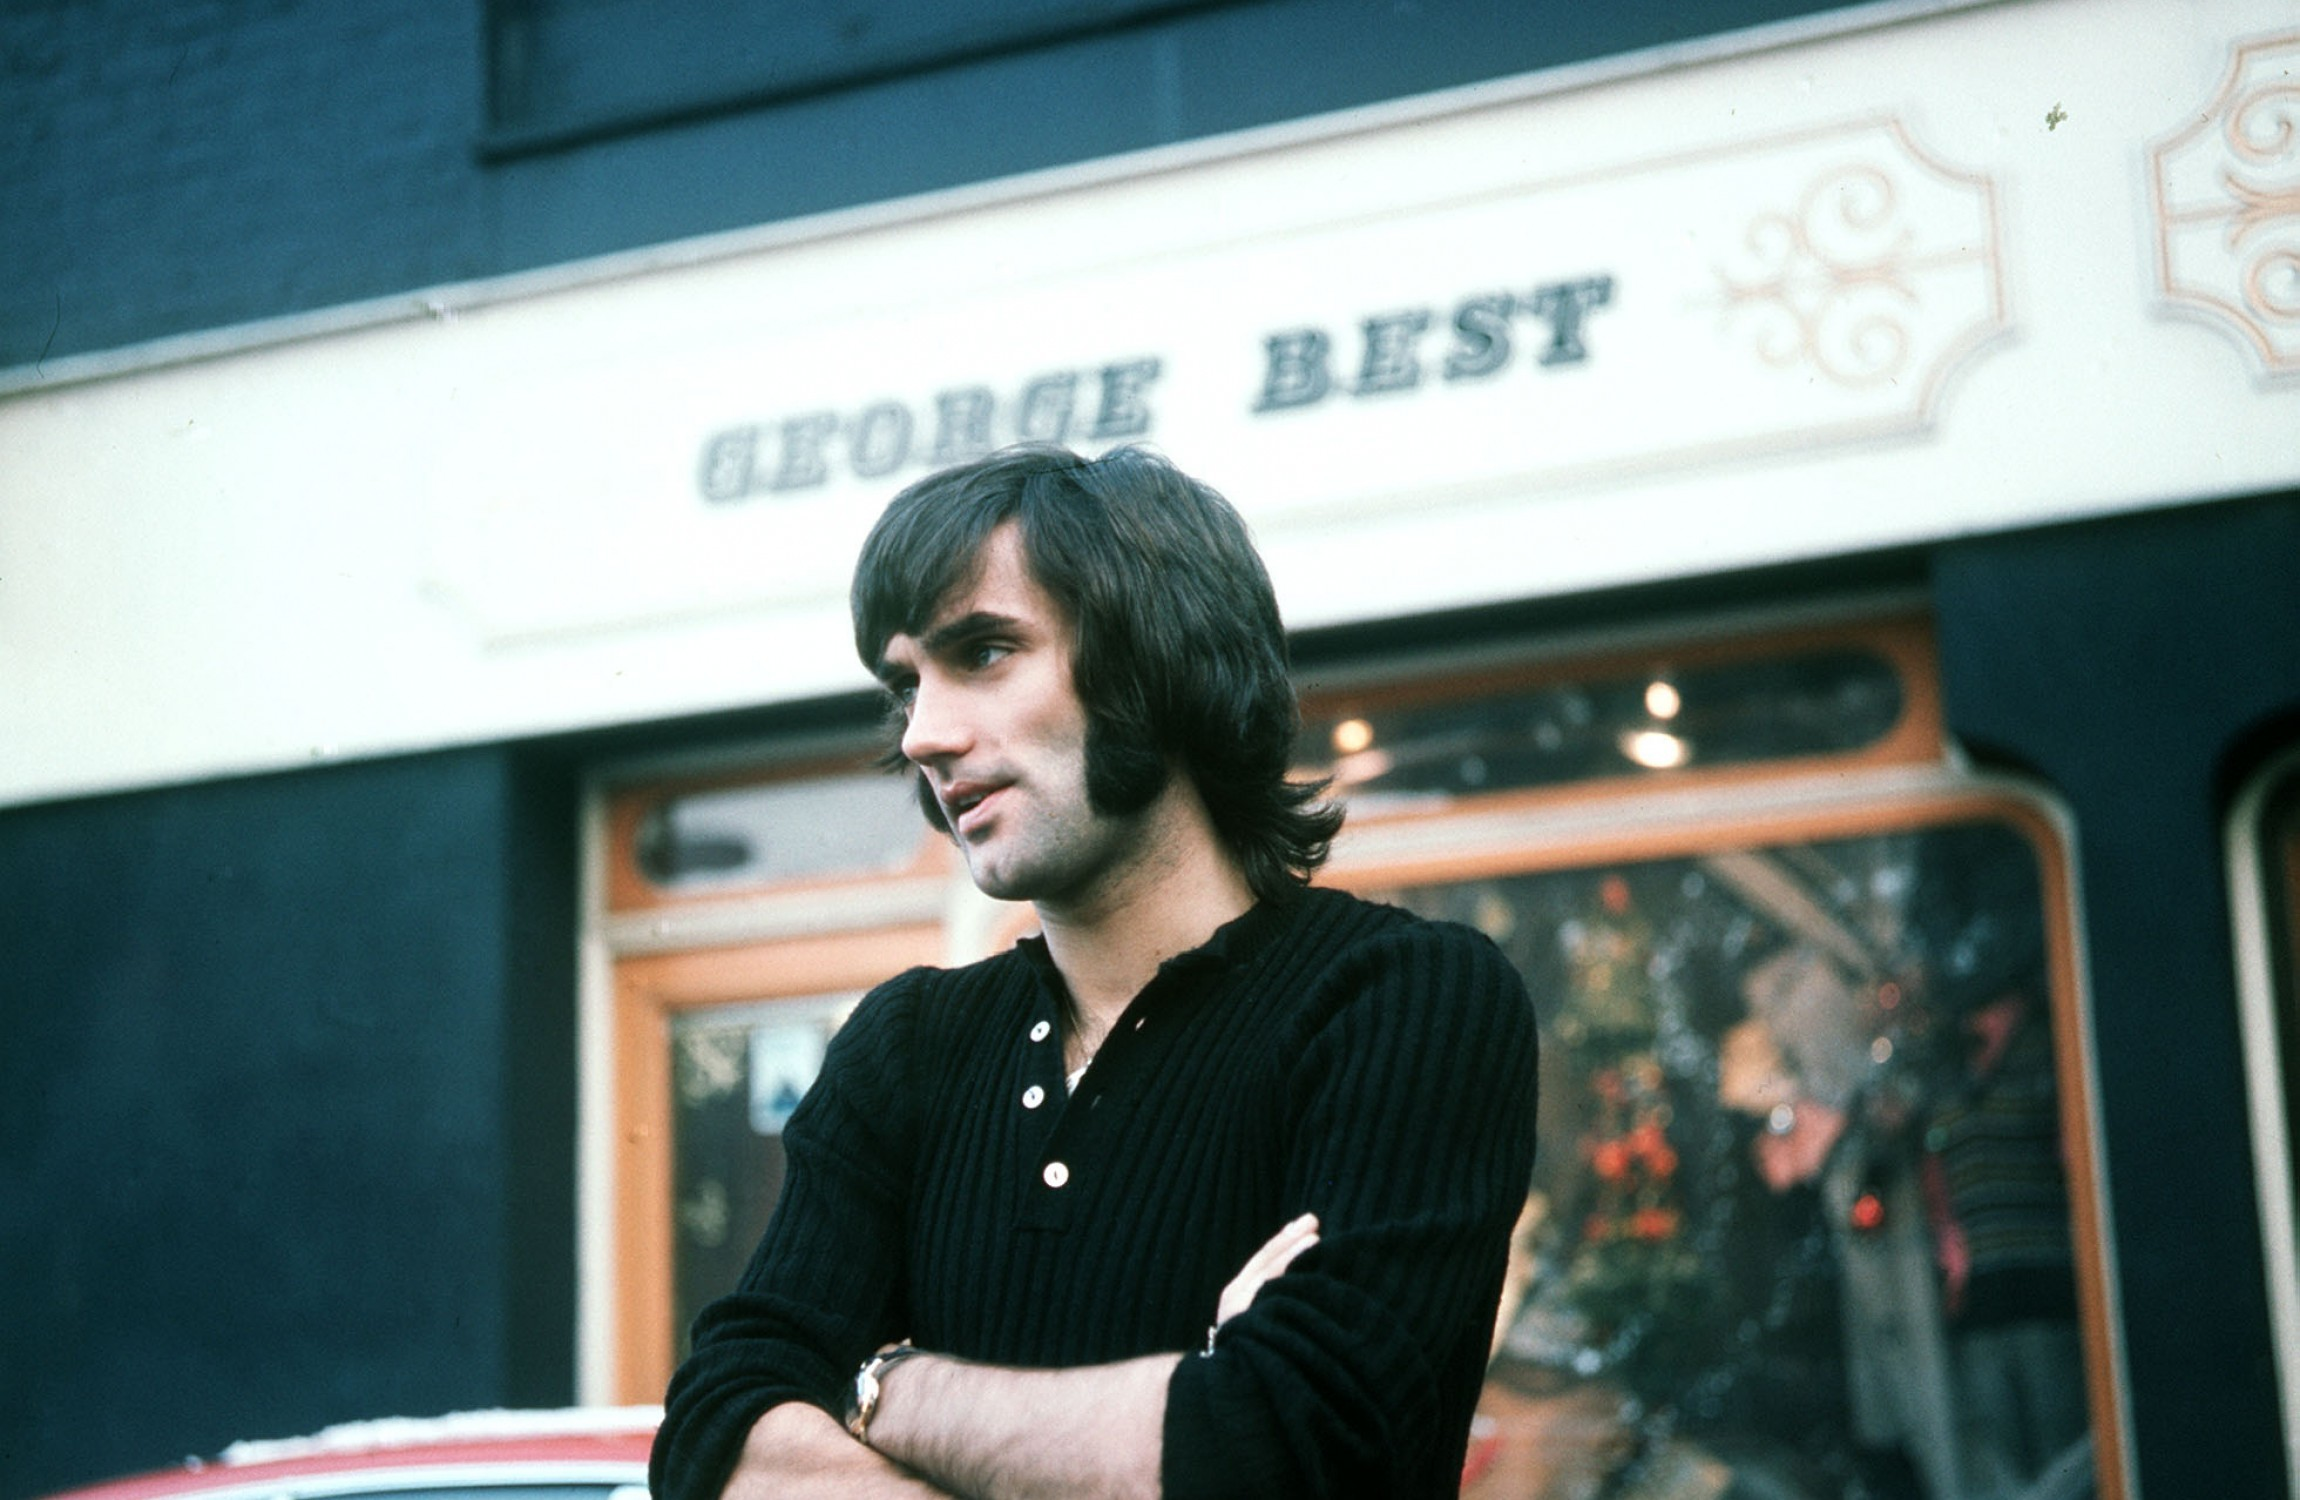 Trailer released for new George Best film set for Irish premiere